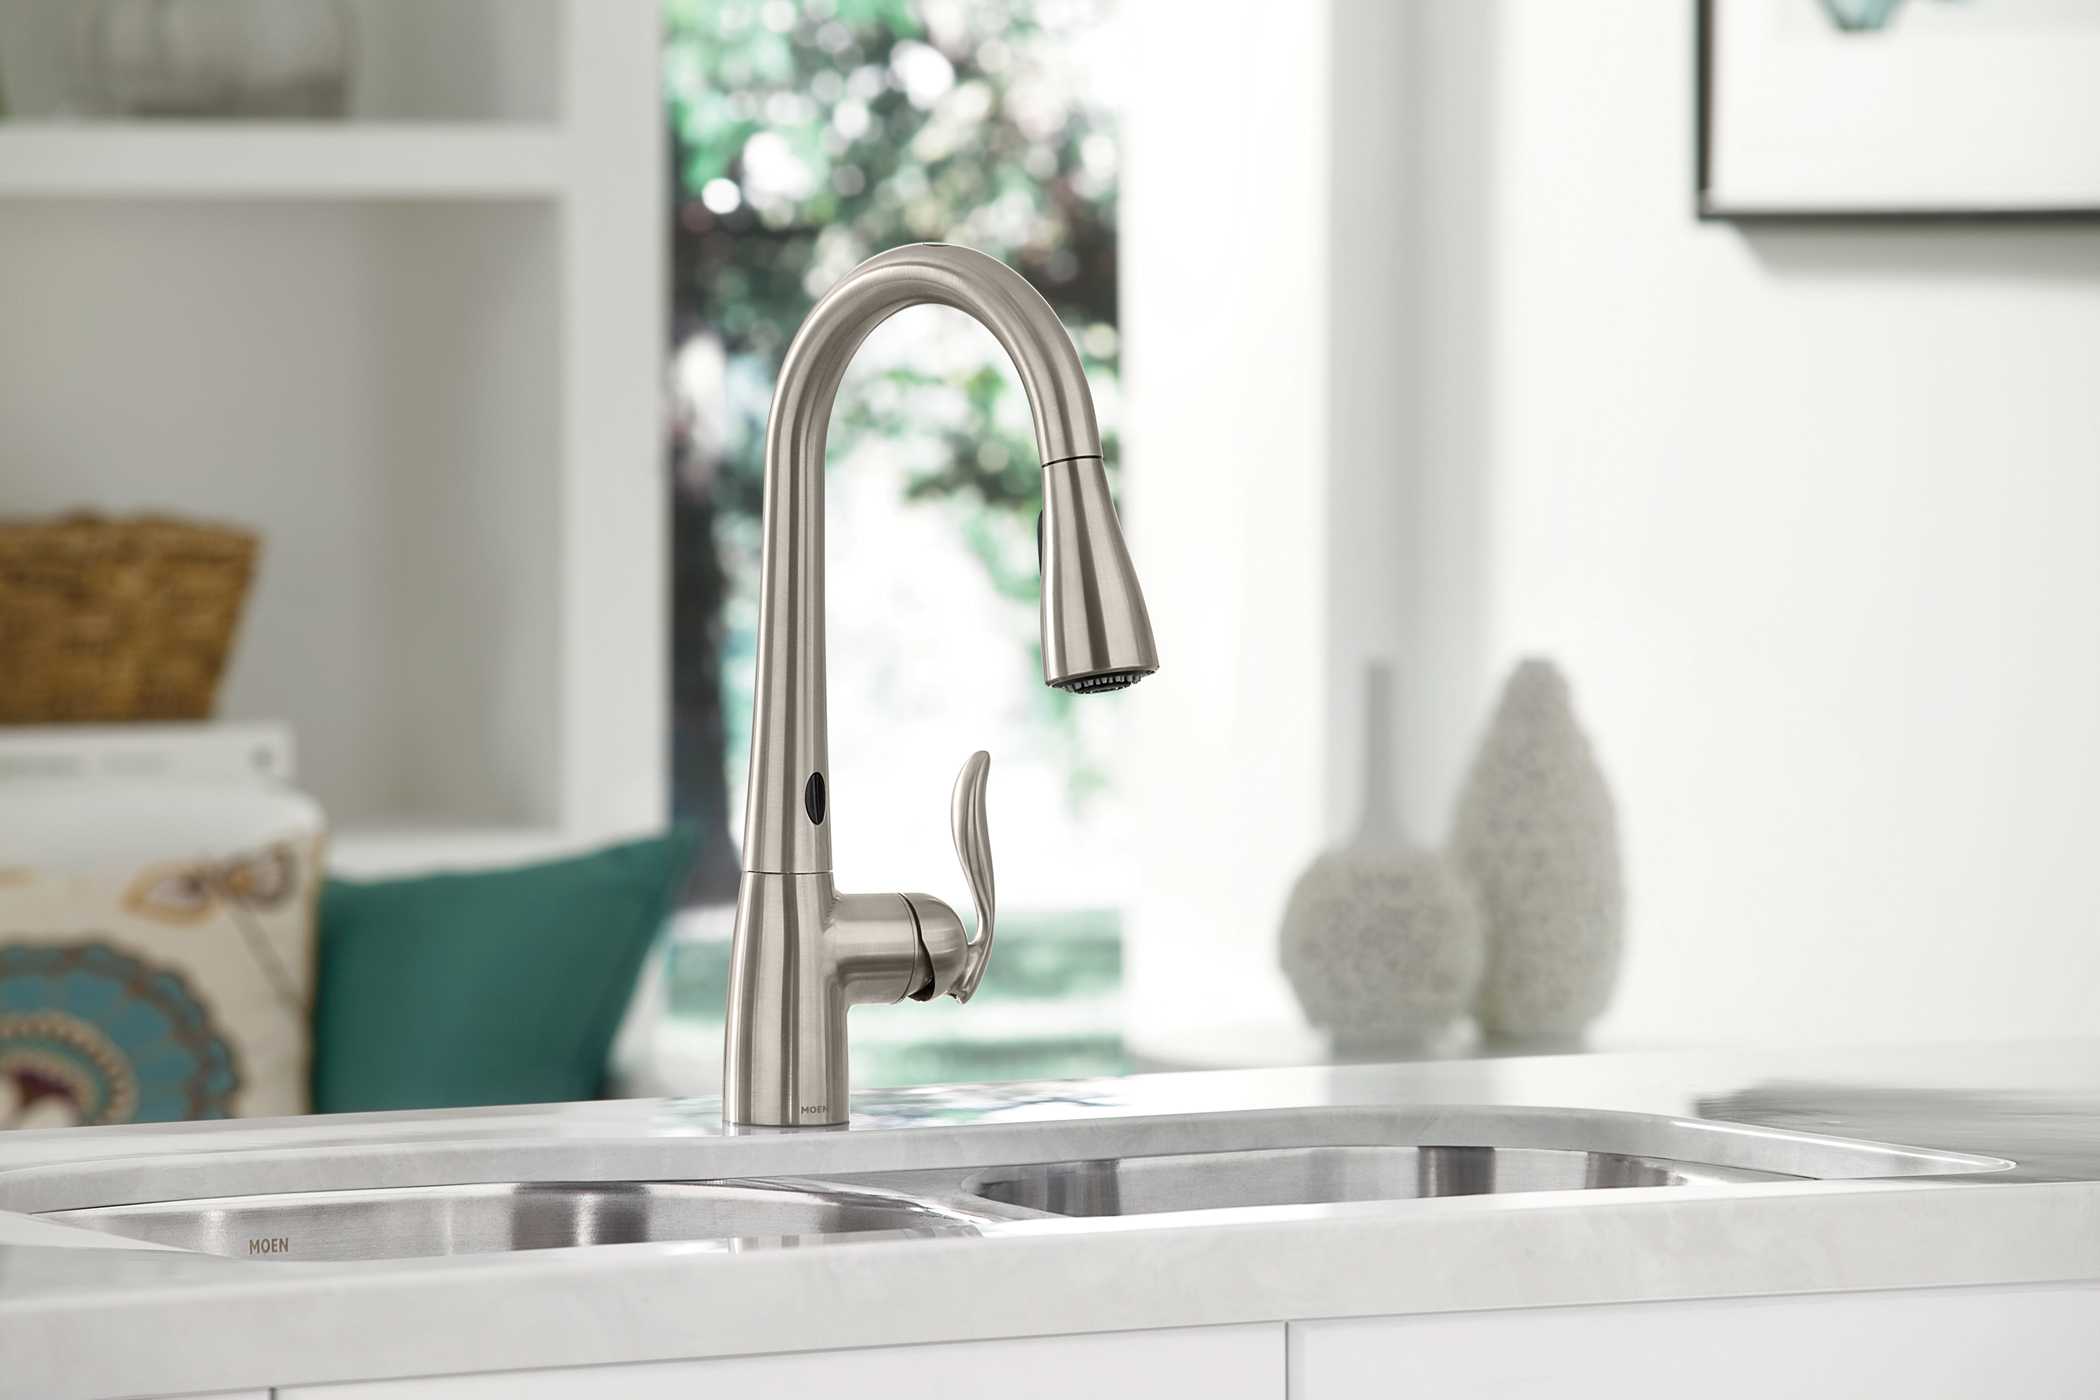 Moen Introduces a HandsFree Faucet that Actually Works